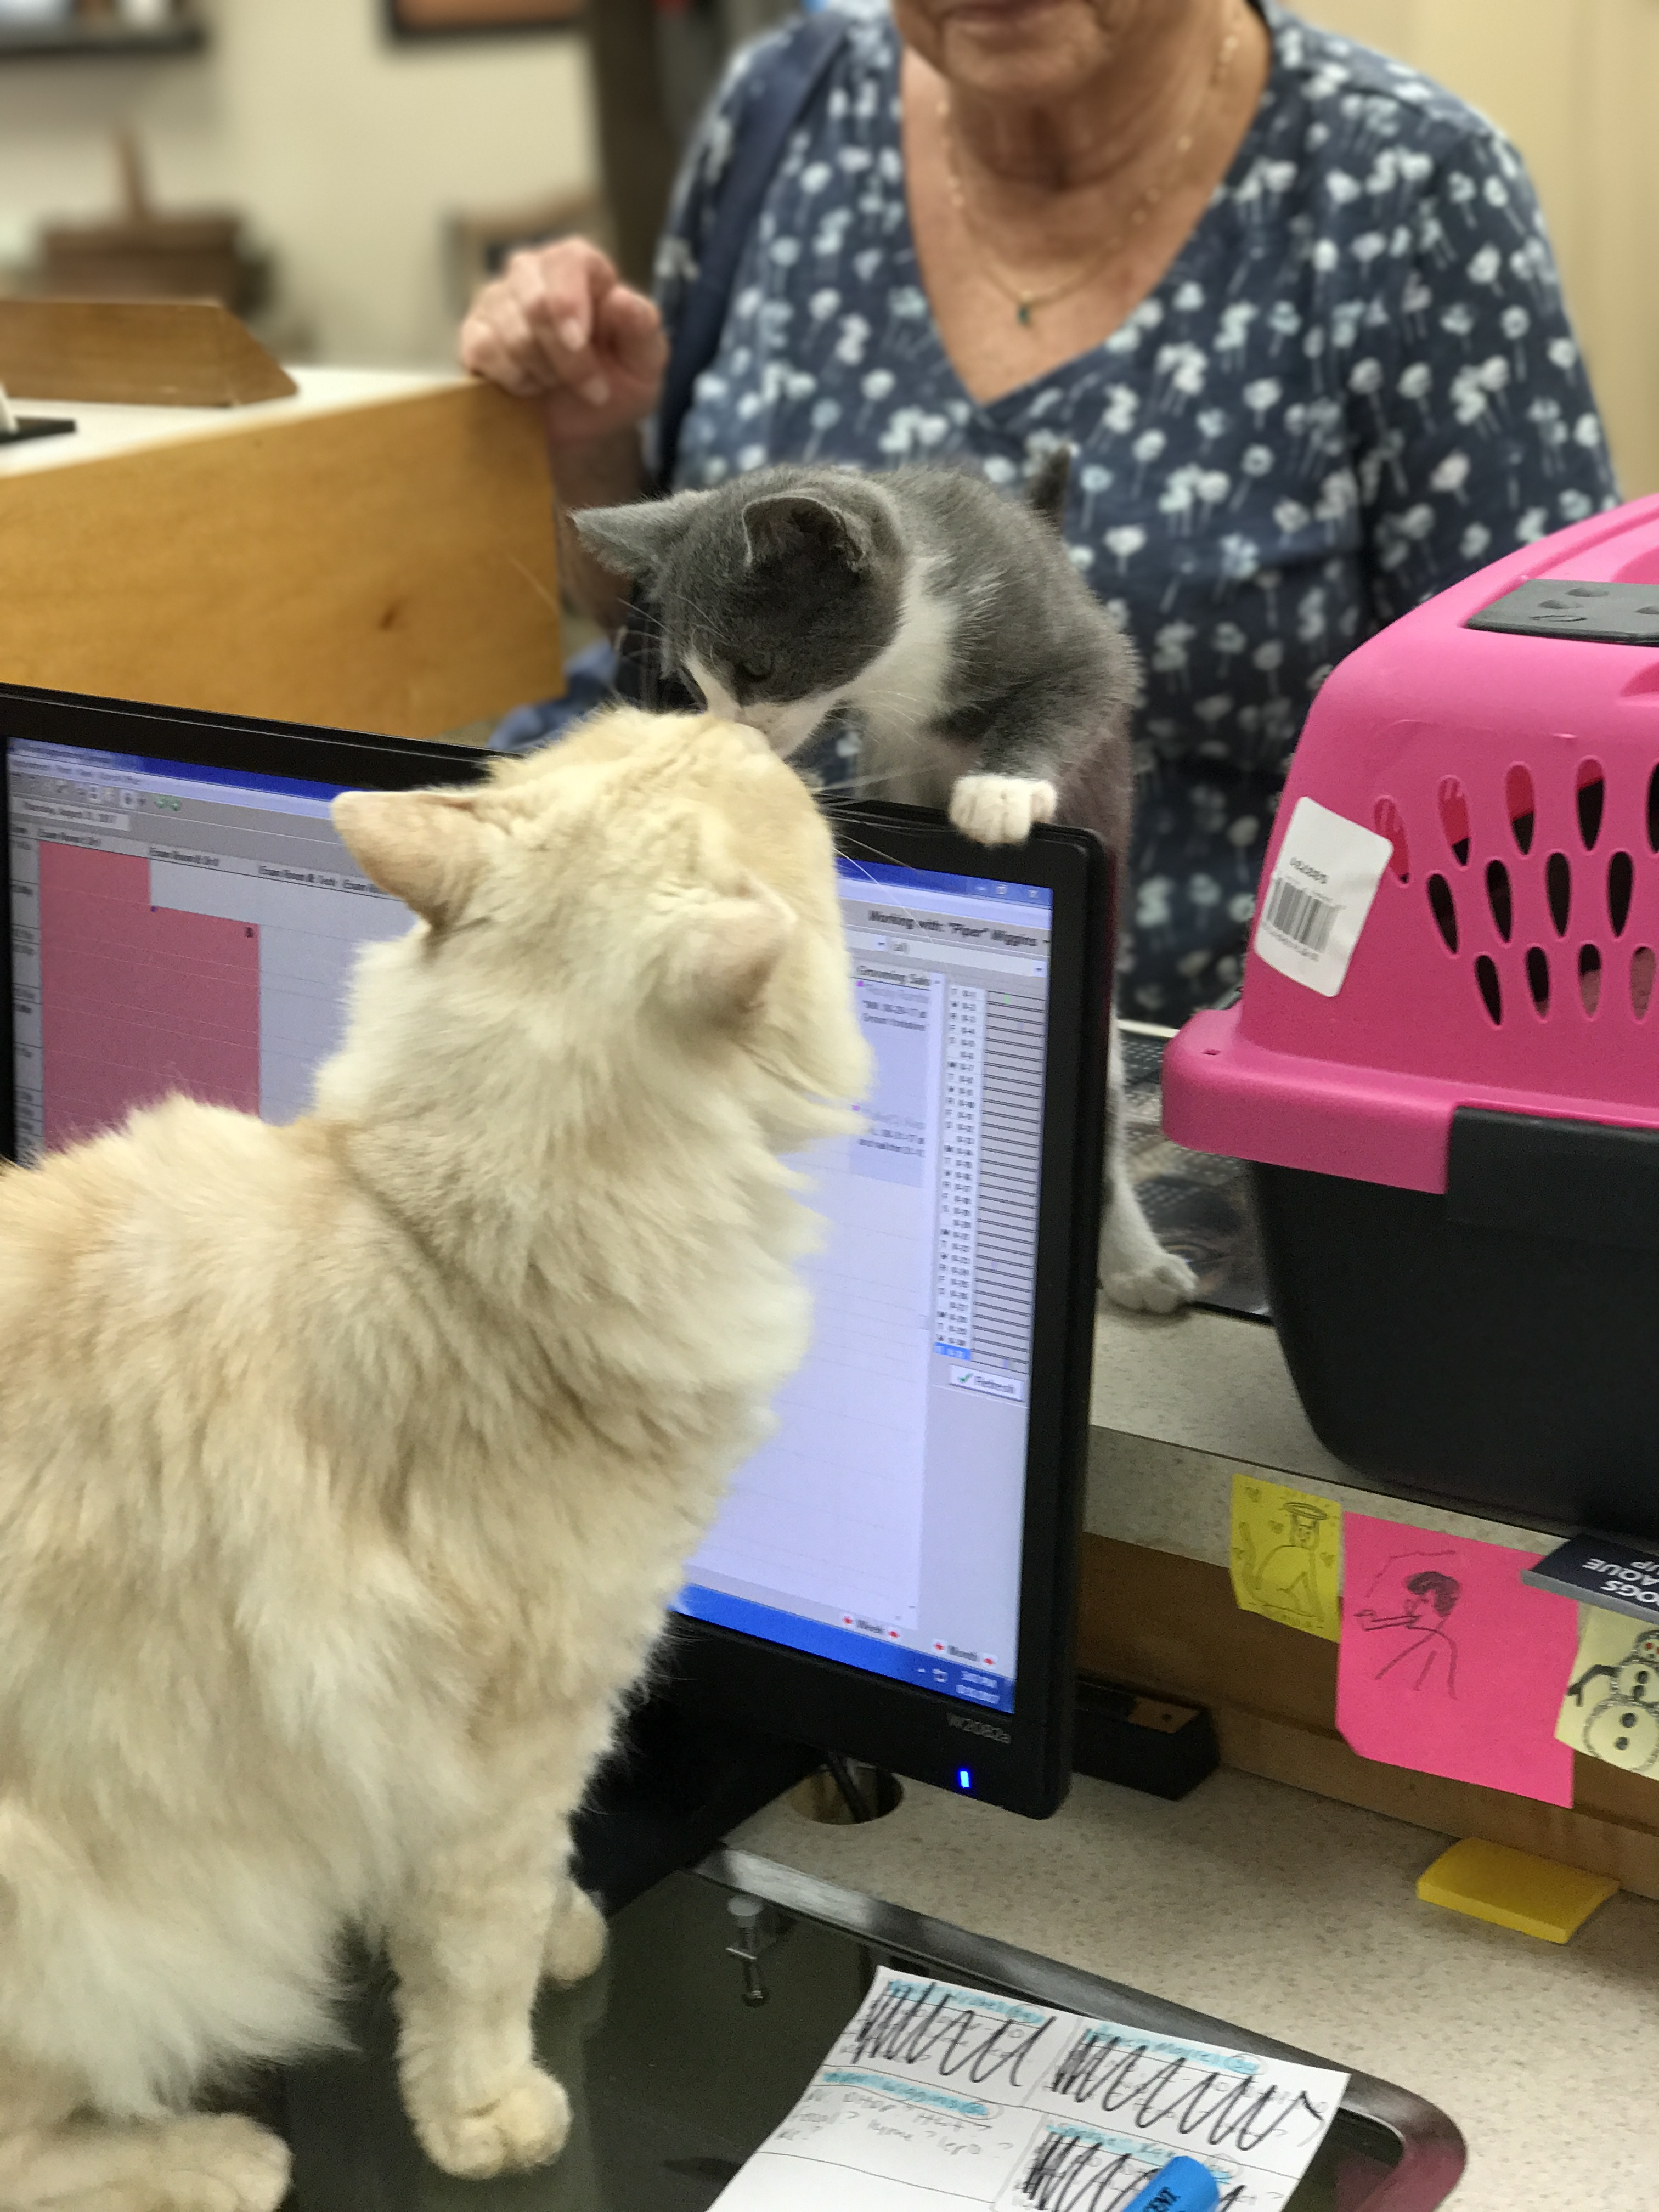 Office cat greeting a kitten